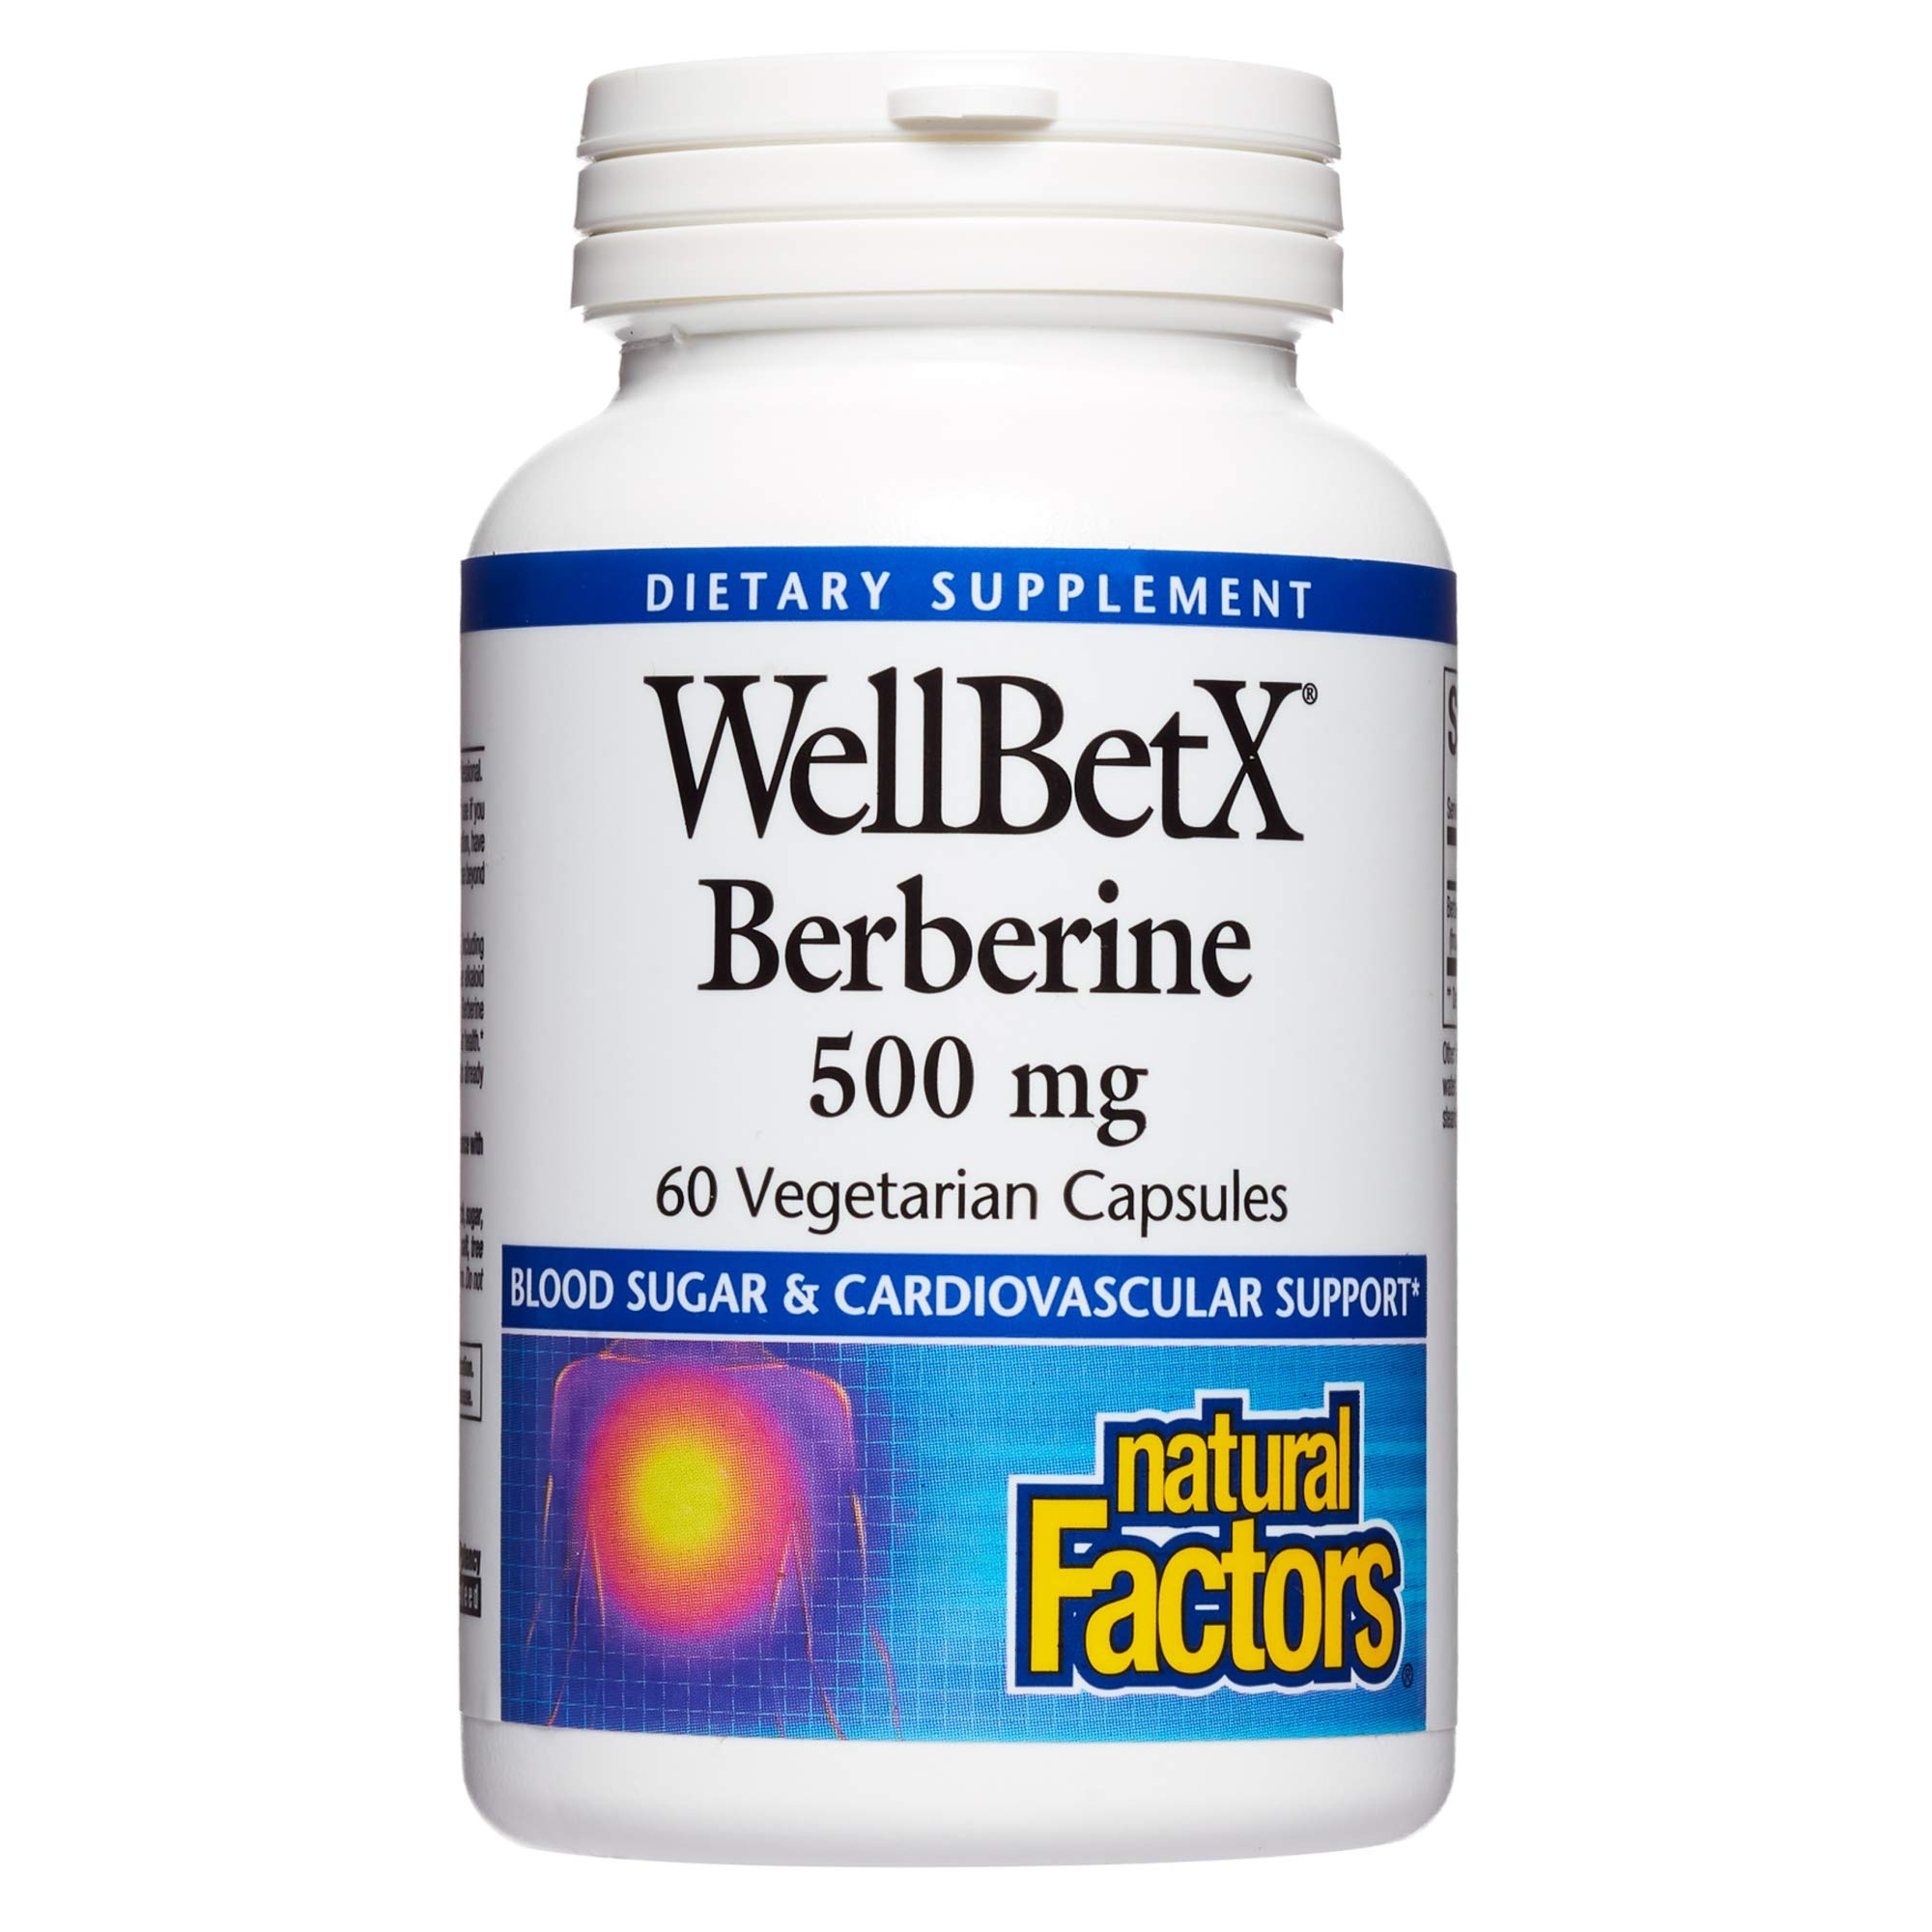 WellBetX Berberine 500 mg by Natural Factors for Healthy Blood Sugar and Cholesterol Levels Already Within The Normal Range, 60 Vegetarian Capsules (60 Servings) by Natural Factors